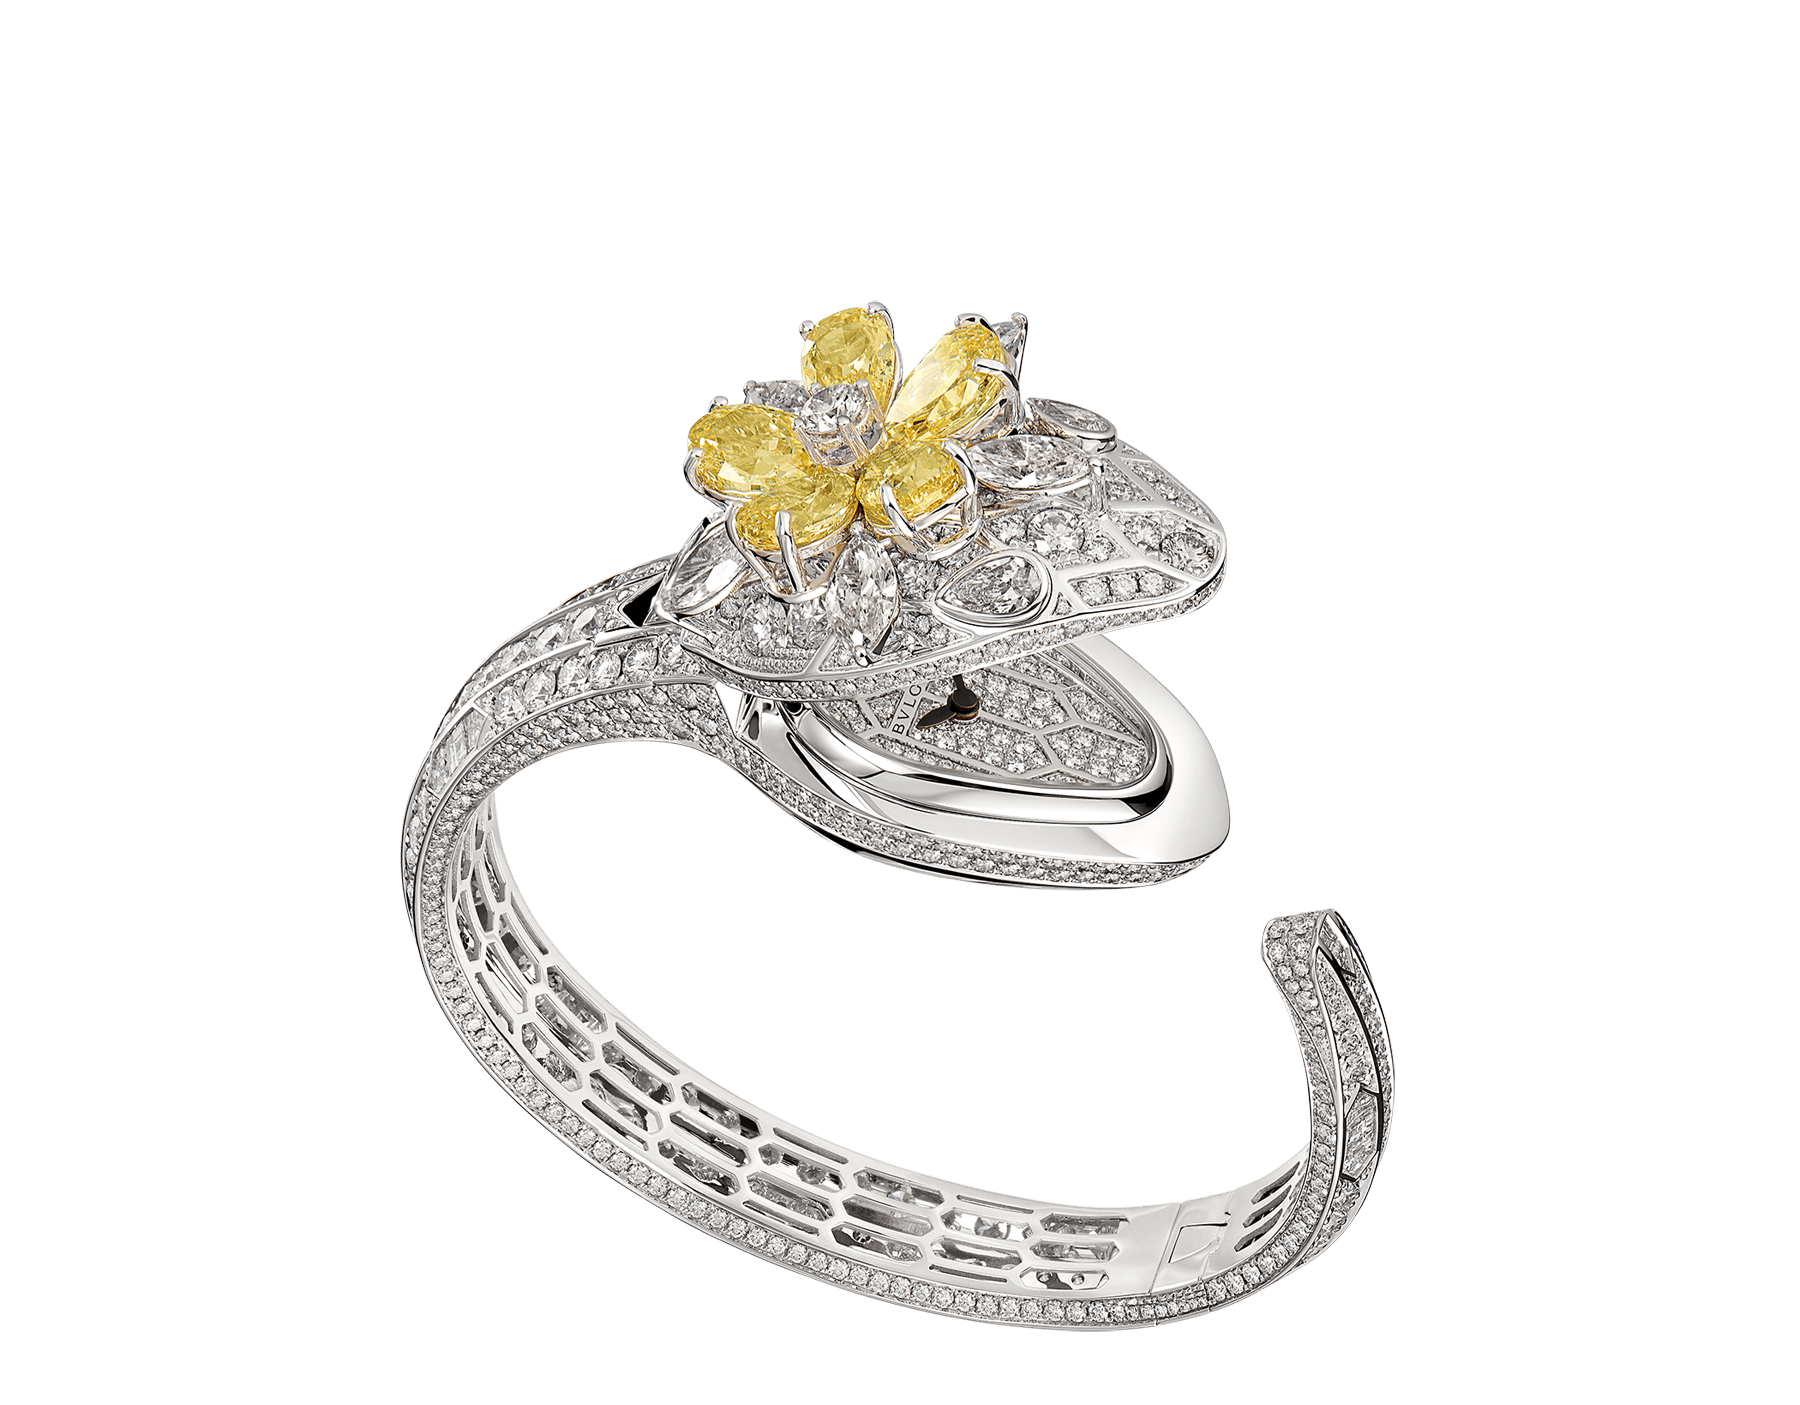 Serpenti Misteriosi Secret Watch with 18 kt white gold head set with brilliant-cut, baguette-cut and marquise-shaped diamonds, pear-shaped yellow diamonds and diamond eyes, 18 kt white gold case, dial and bracelet all set with brilliant-cut diamonds 103036 image 2